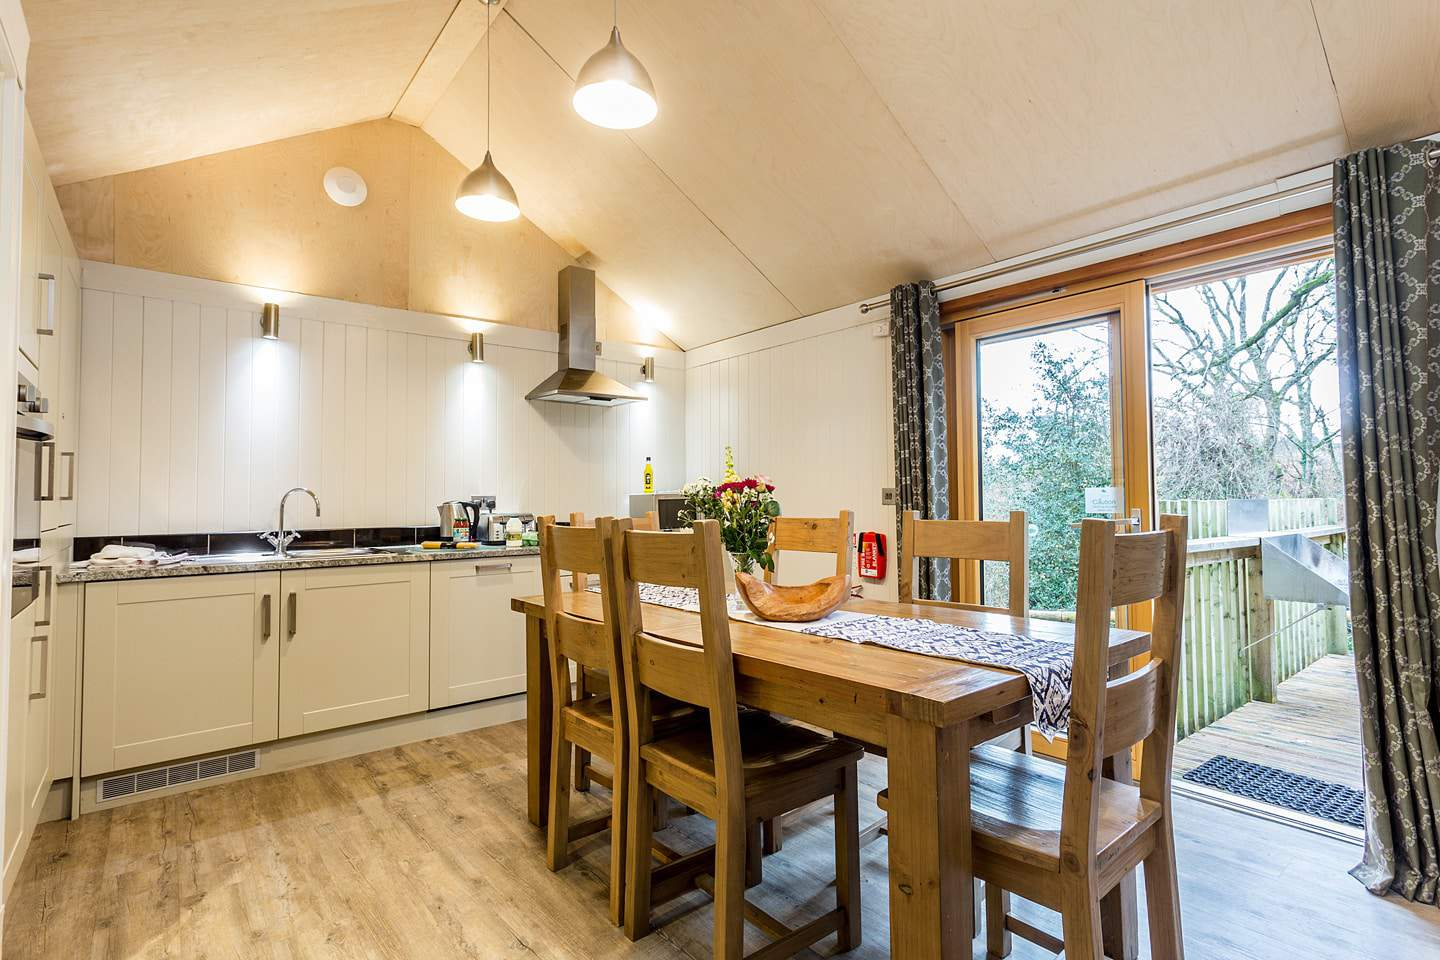 Burnbake Forest Lodges - 3 bedroom lodge sleeps 6